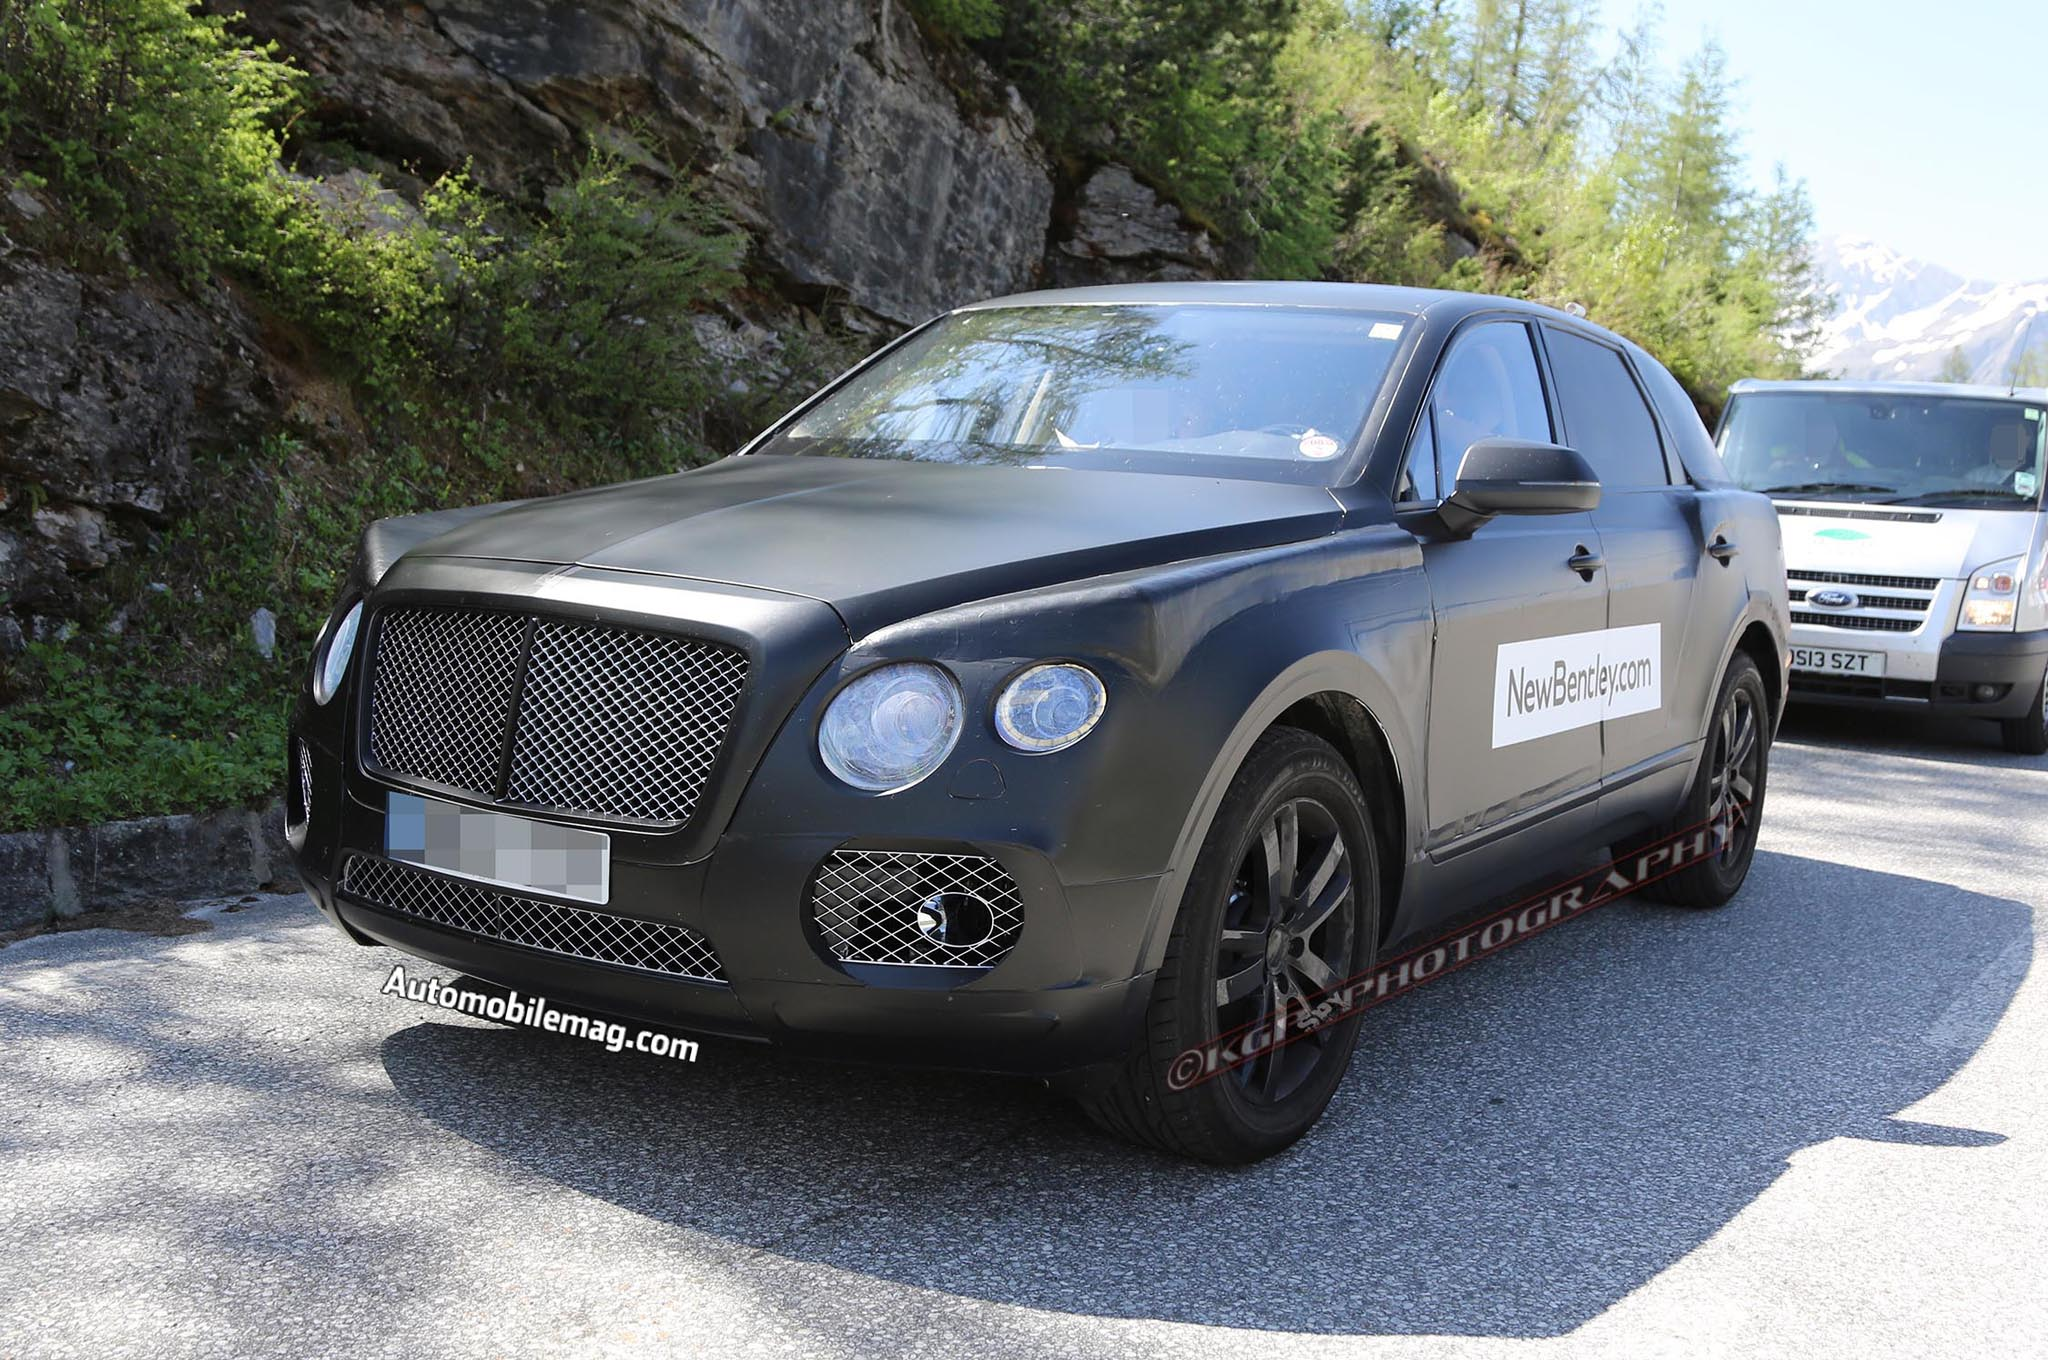 bentley suv spied testing automobile magazine. Black Bedroom Furniture Sets. Home Design Ideas